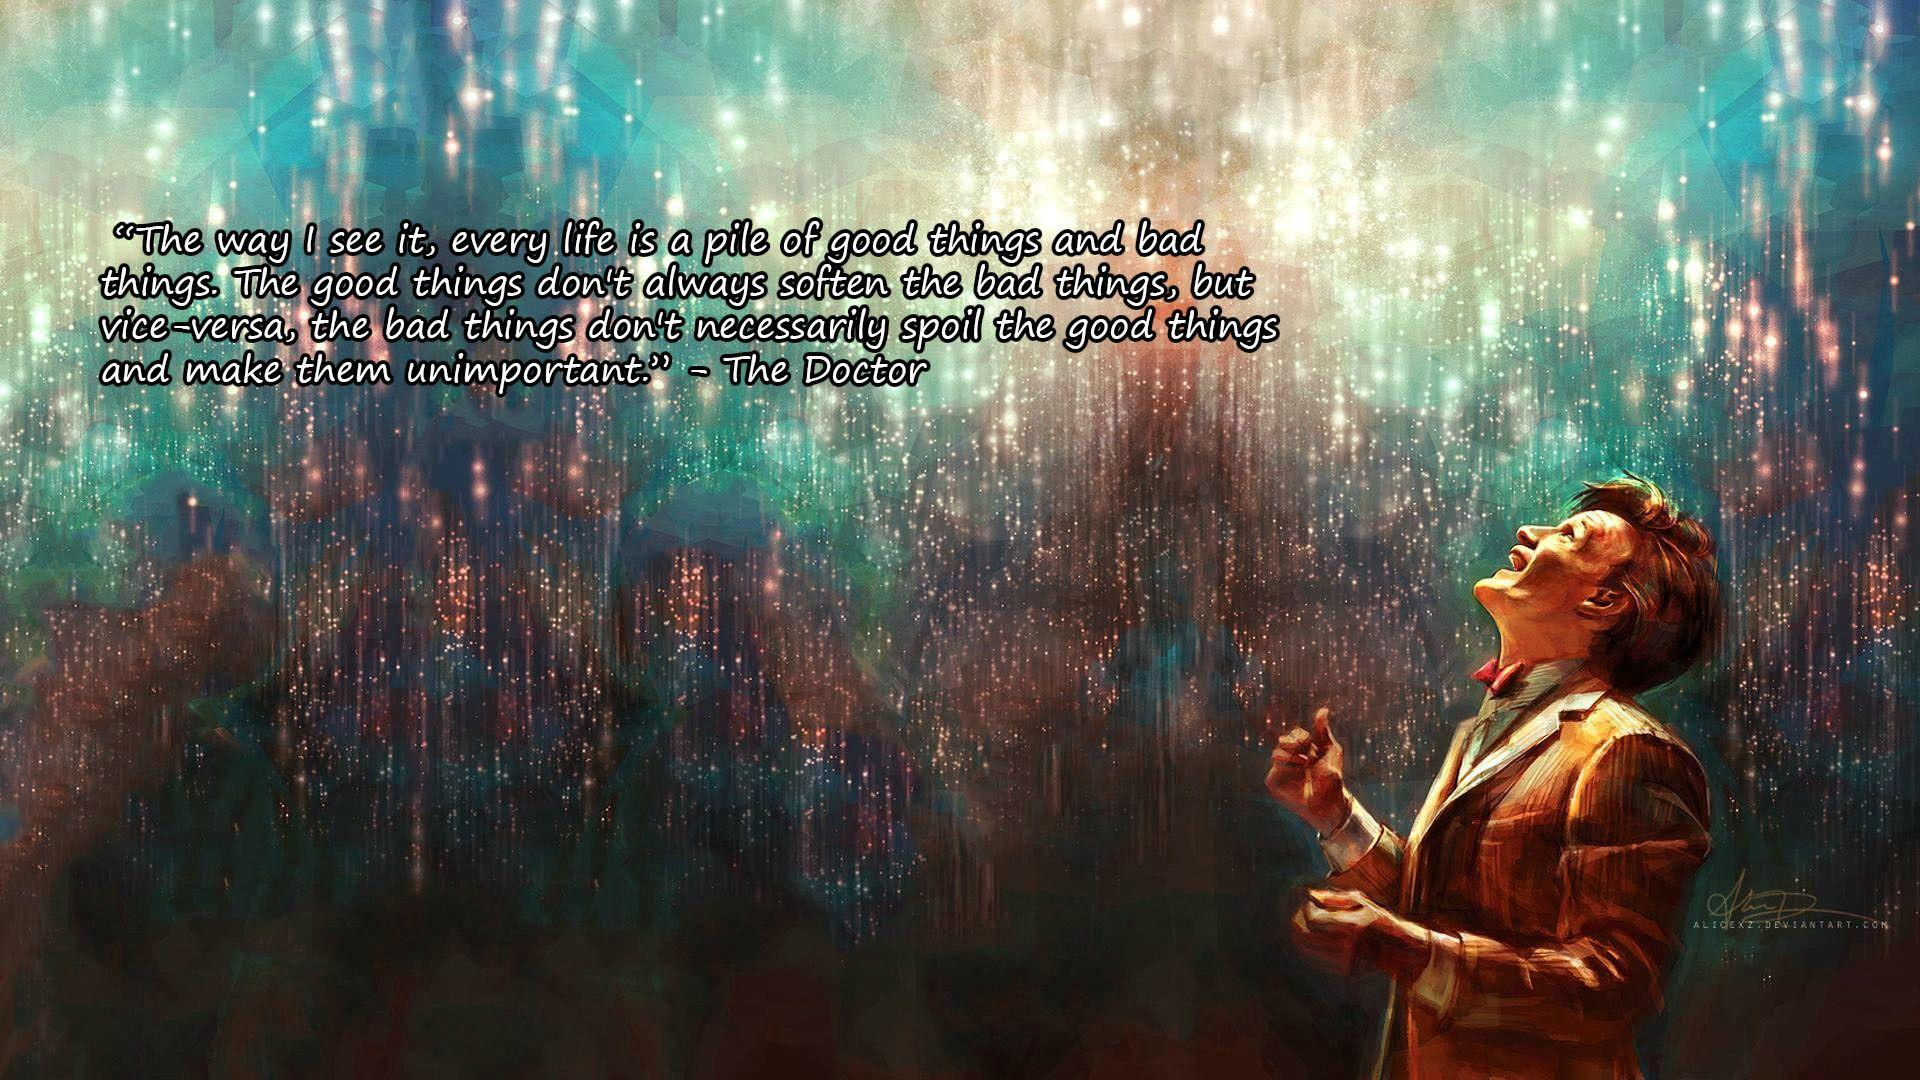 Doctor Who Quote Wallpapers - Wallpaper Cave